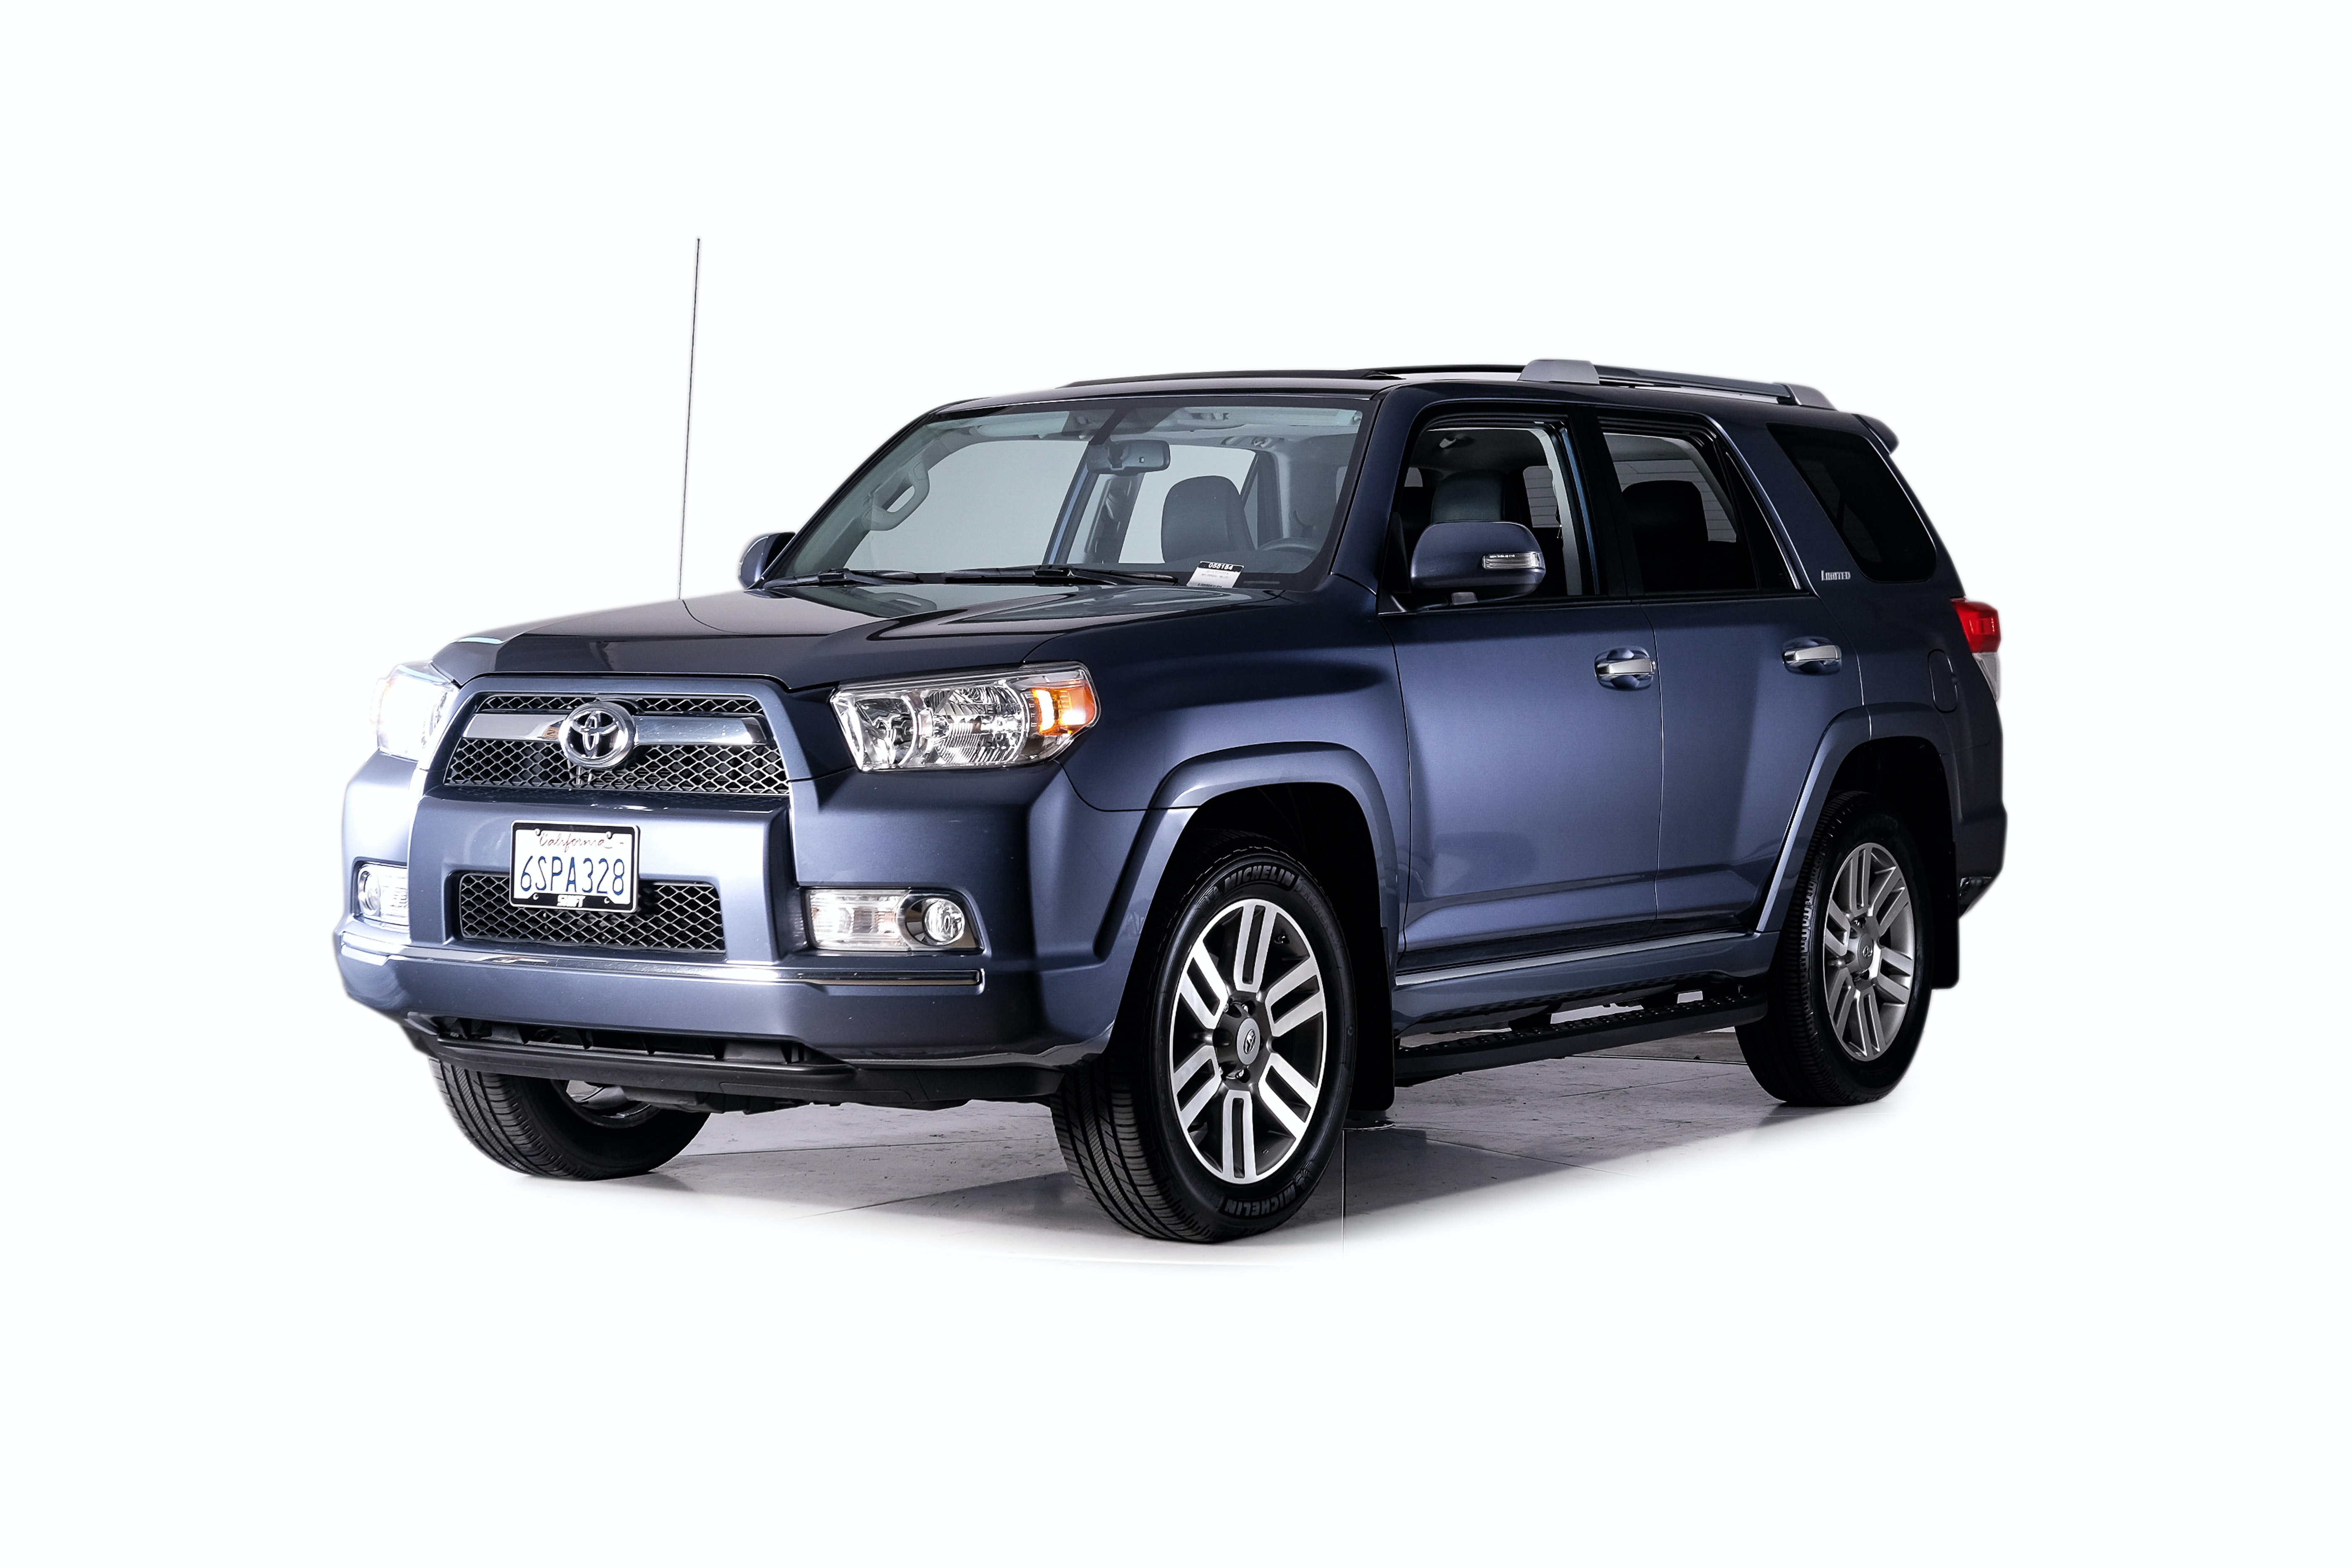 Buy A Used 2011 Toyota 4Runner Limited | Shift